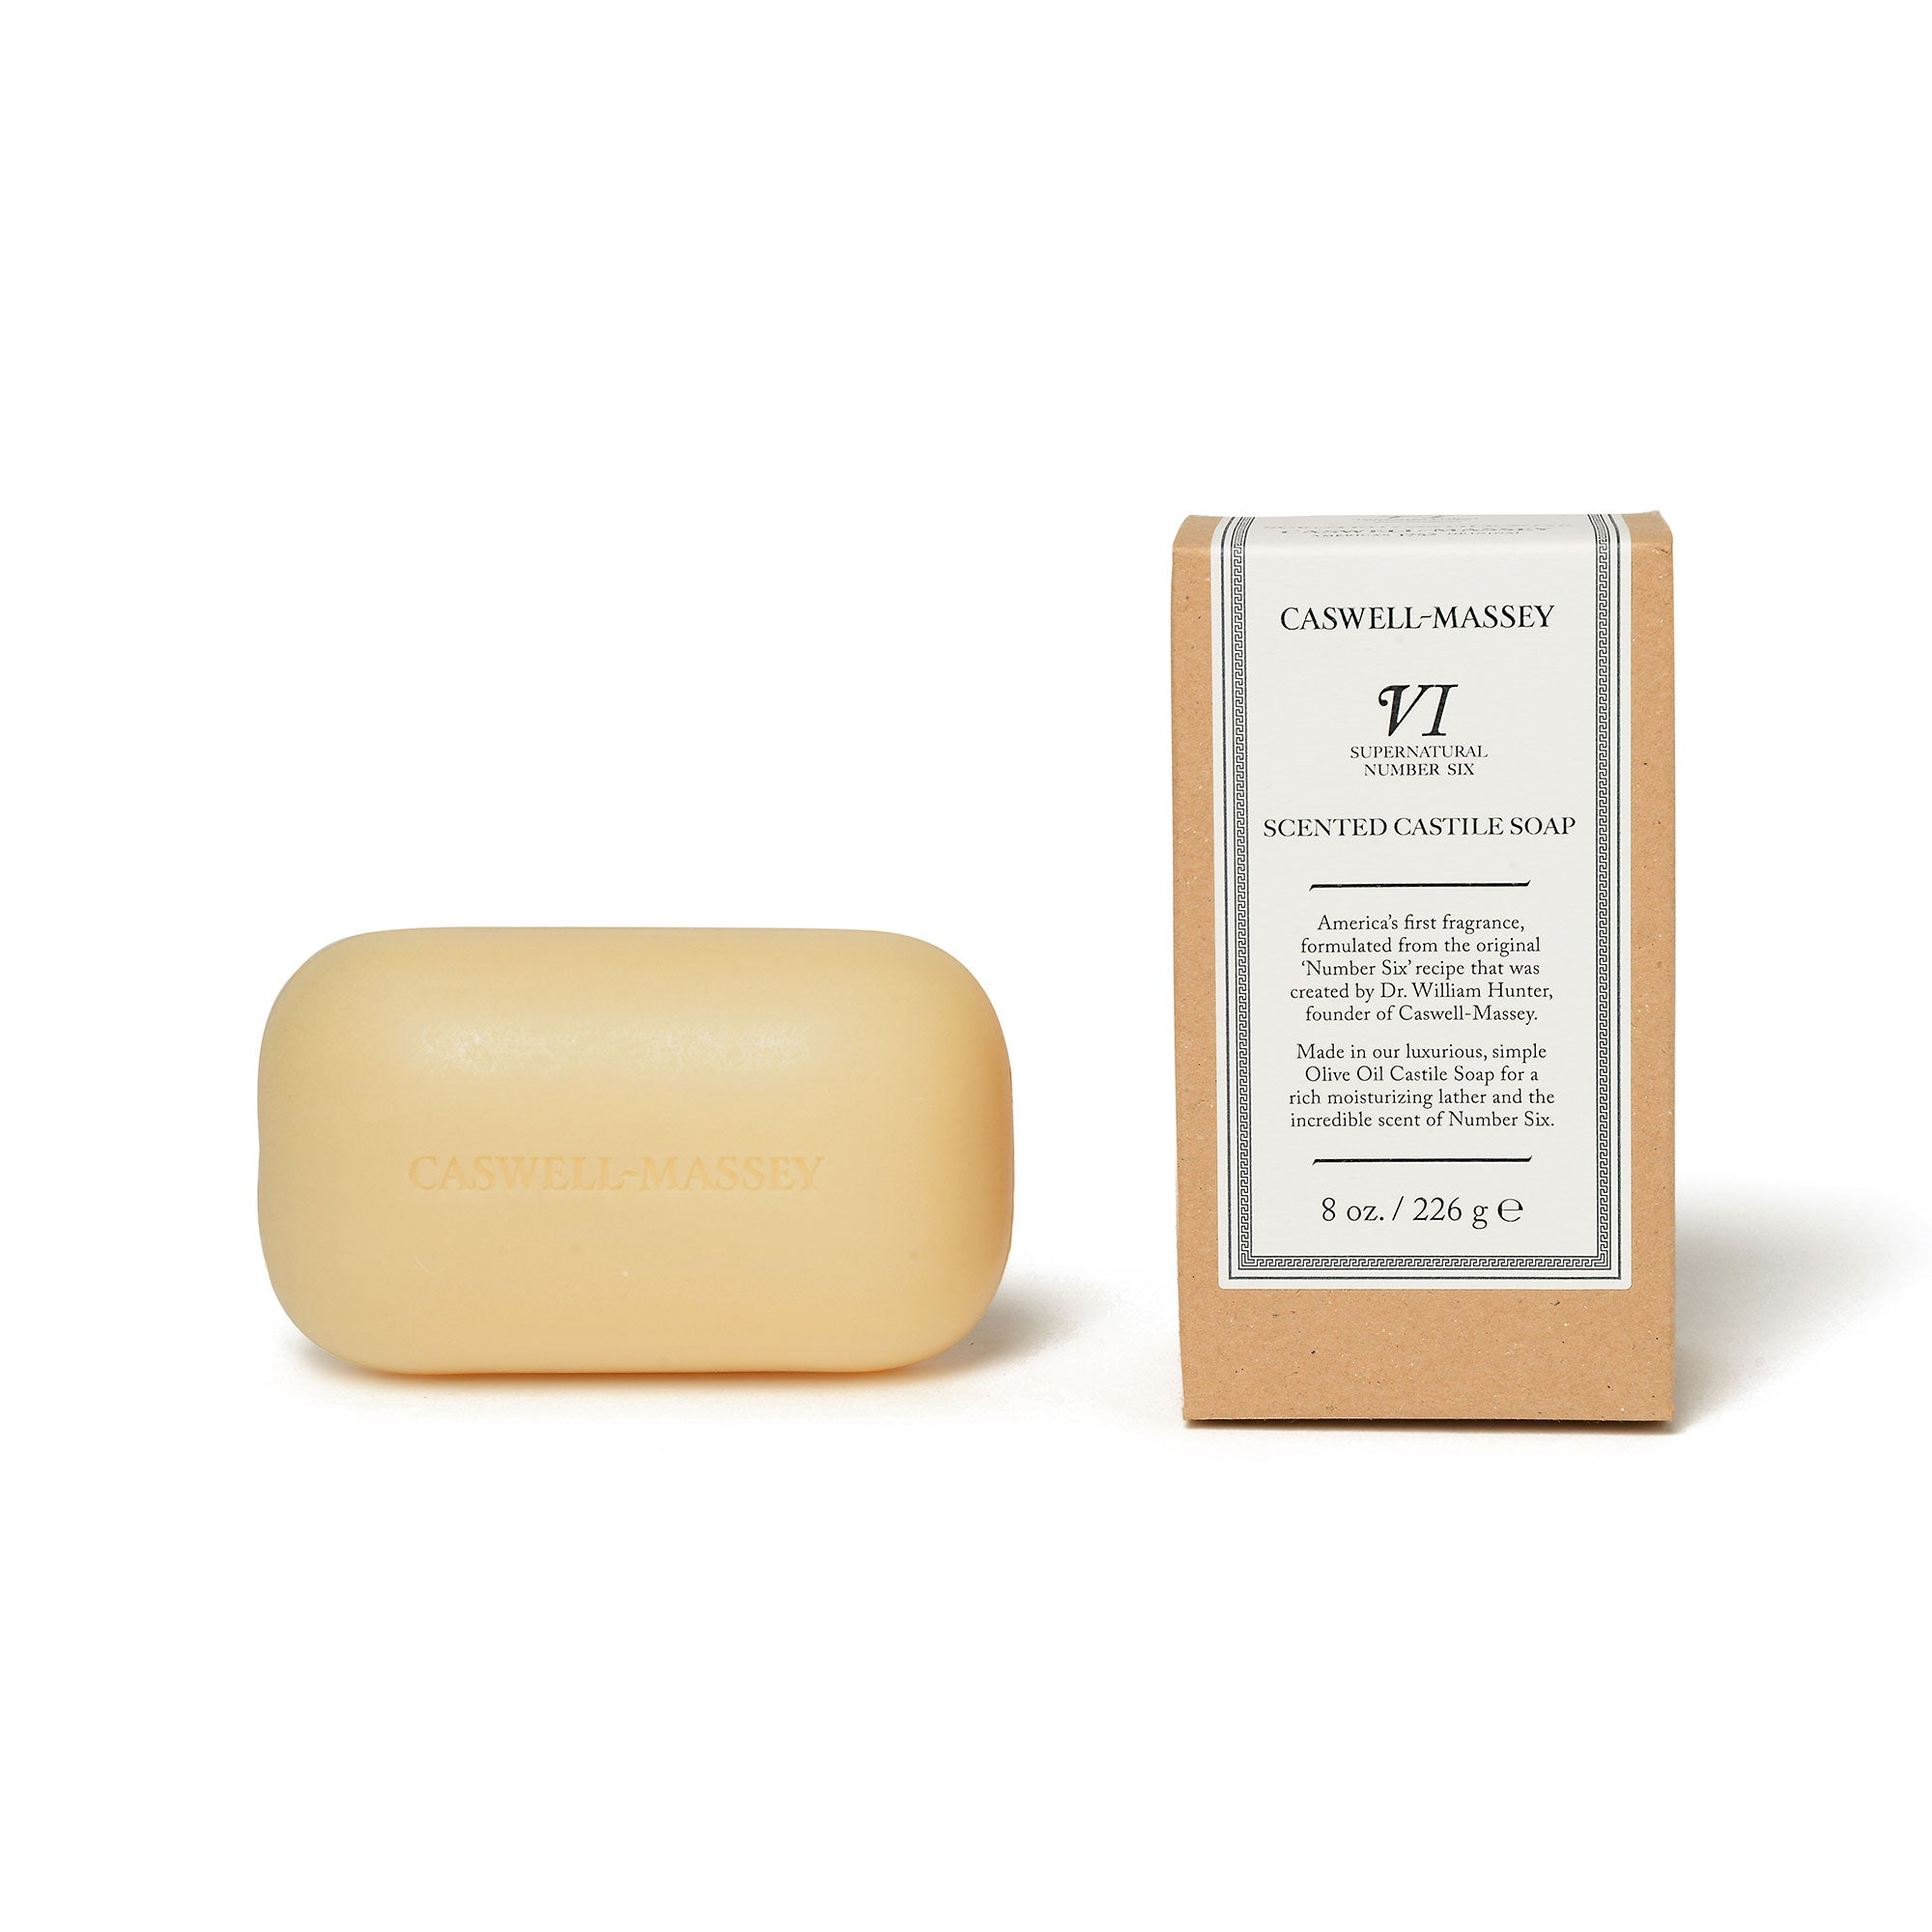 Supernatural Number Six Castile Bar Soap